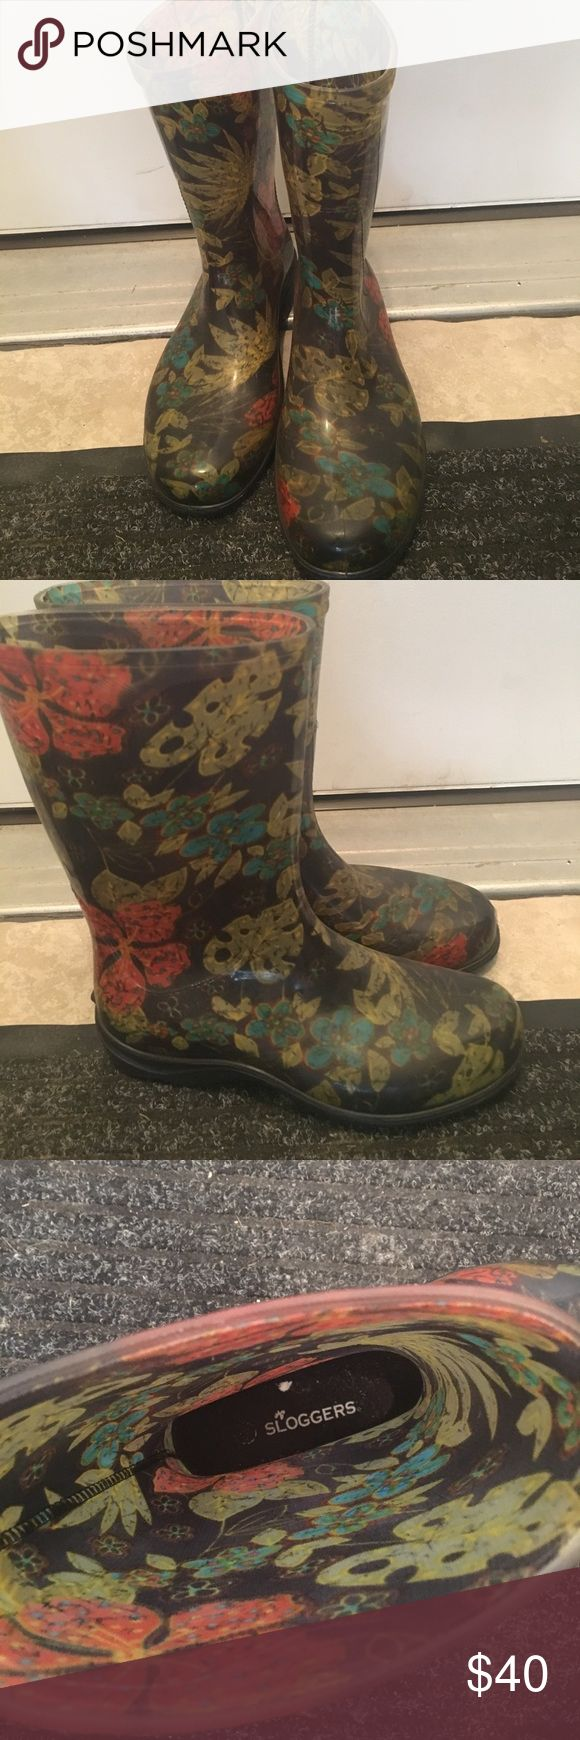 Sloggers rain boot Like new. sloggers Shoes Winter & Rain Boots